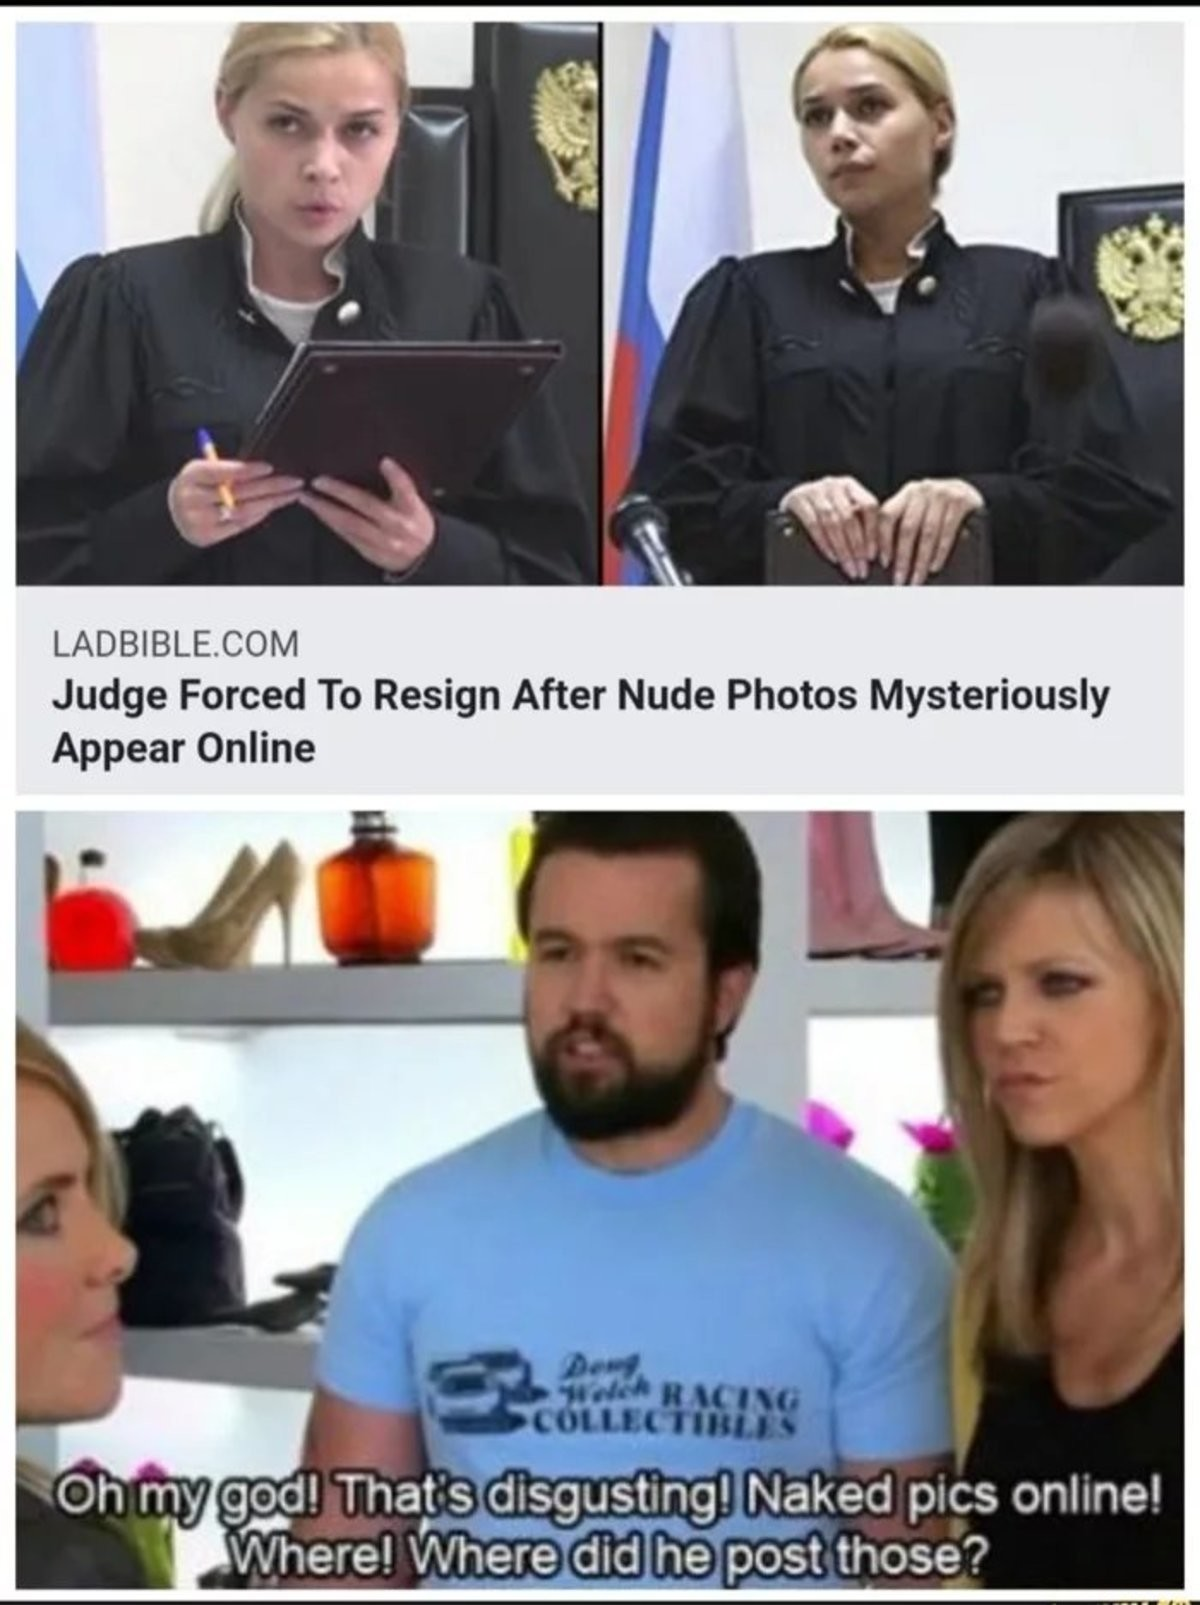 Judge nude got fired. .. Getting fired for a nide taken off your phone via hacking is a reason, where the people she works with and for unaware she had tits